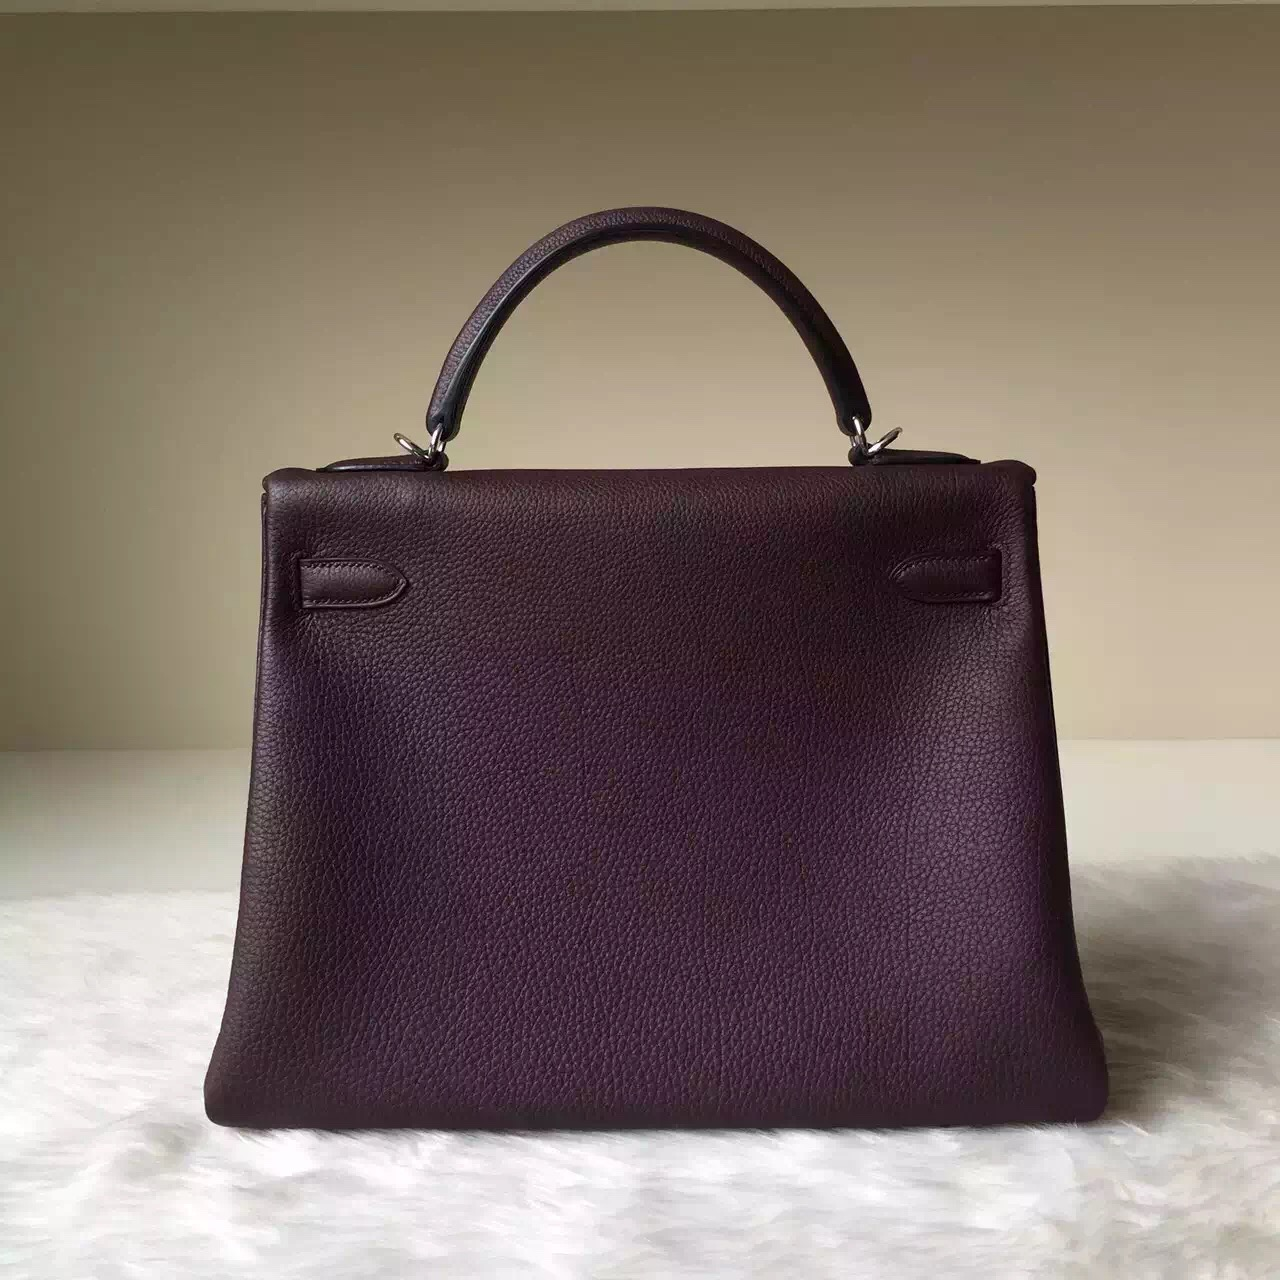 Hand Stitching Hermes Togo Leather Kelly Bag 32CM in Bordeaux